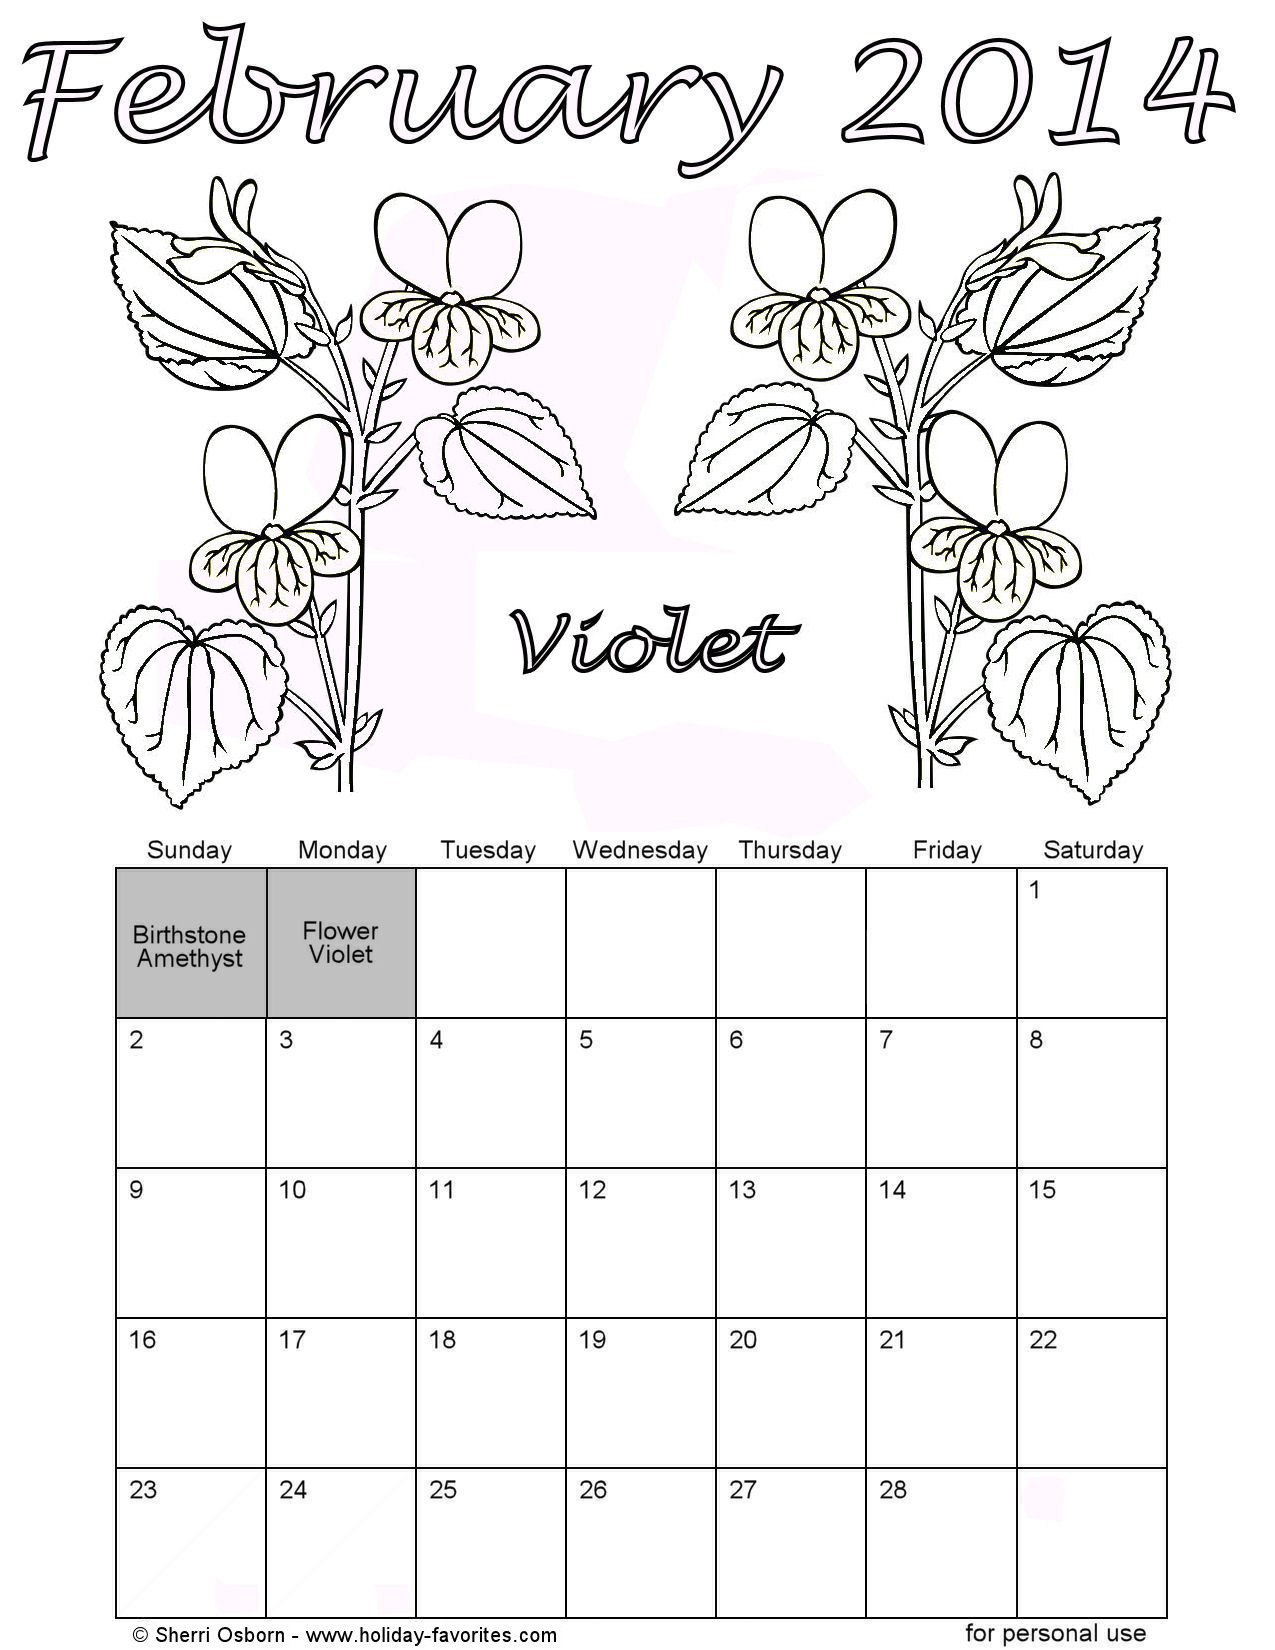 February 2014 Calendar With Holidays Printable february 2014